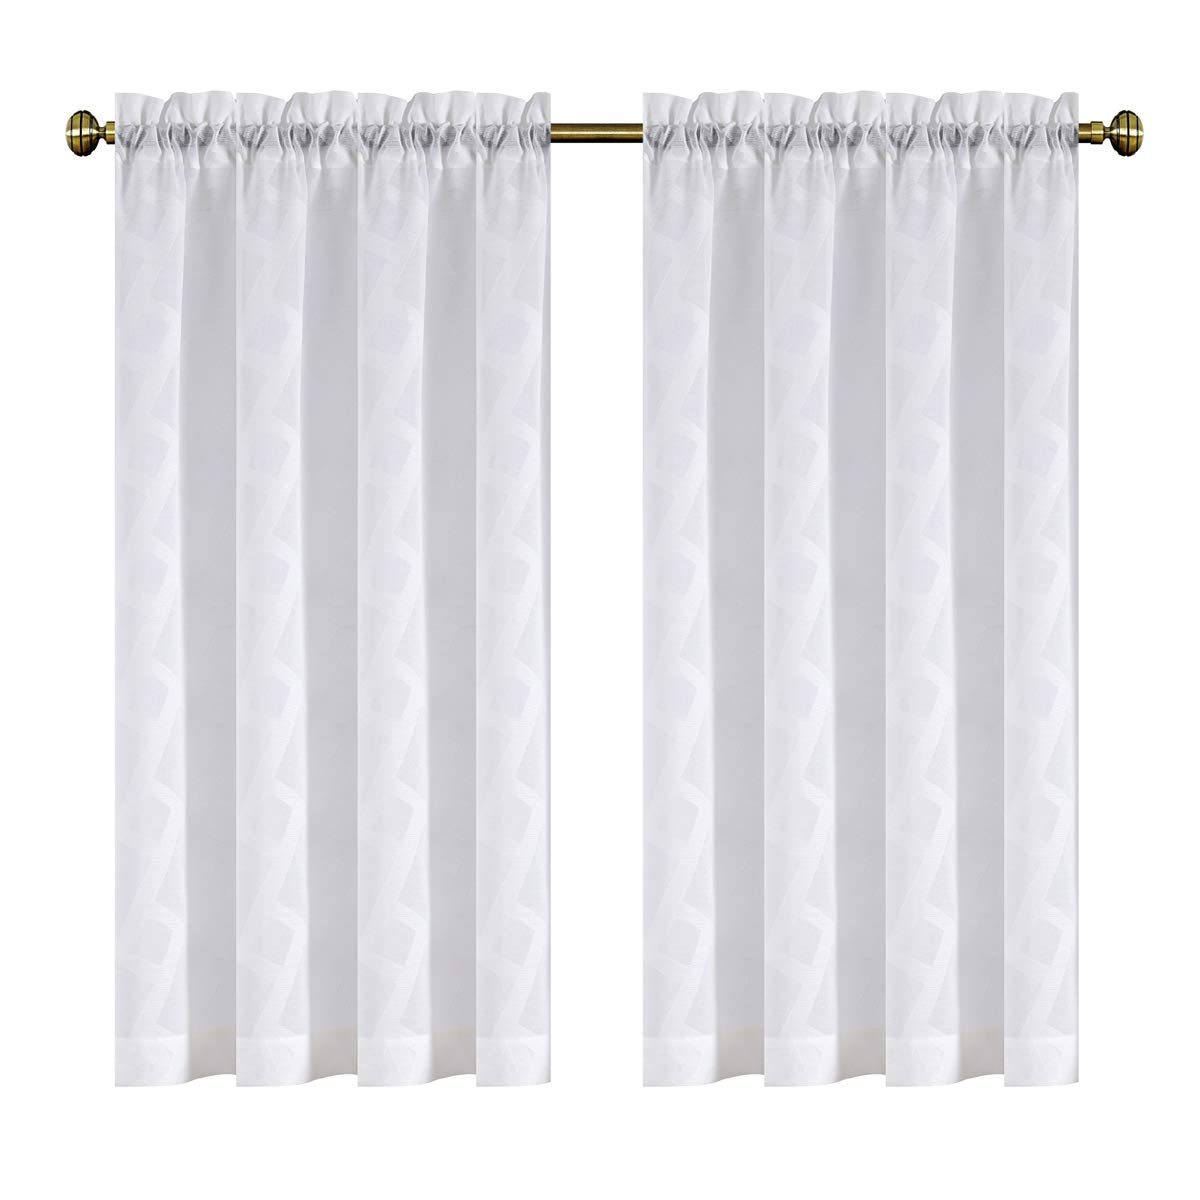 Kotile Window Treatment Drapes Sheer Curtain Panels Rod Pocket Solid Striped Elegant Jacquard Semi Sheer Draperies for Patio Glass Door (54 by 84 Inch, 2 Panels, White)